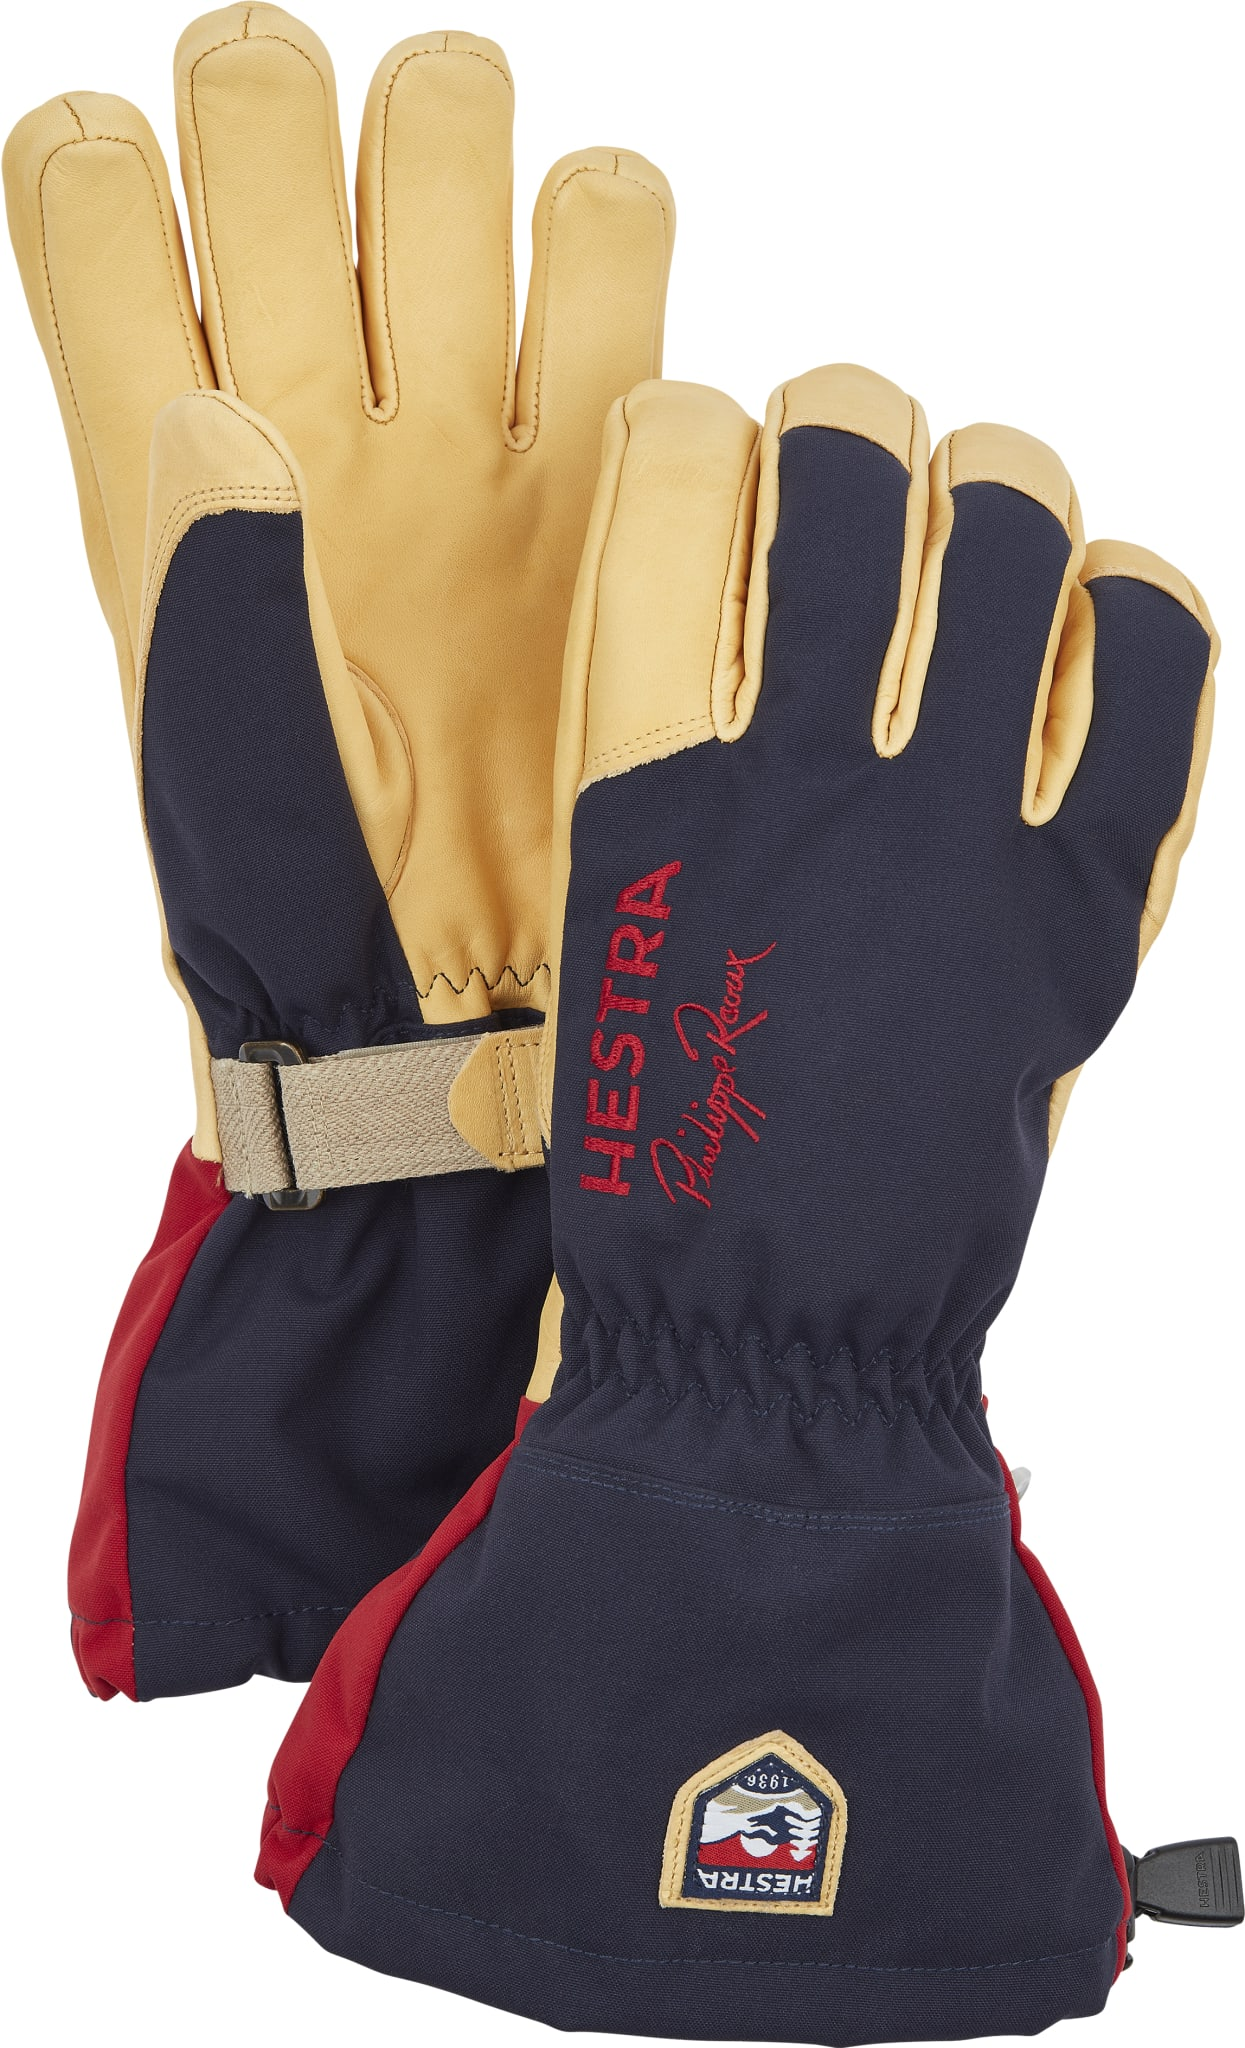 Philippe Raoux Classic Gloves